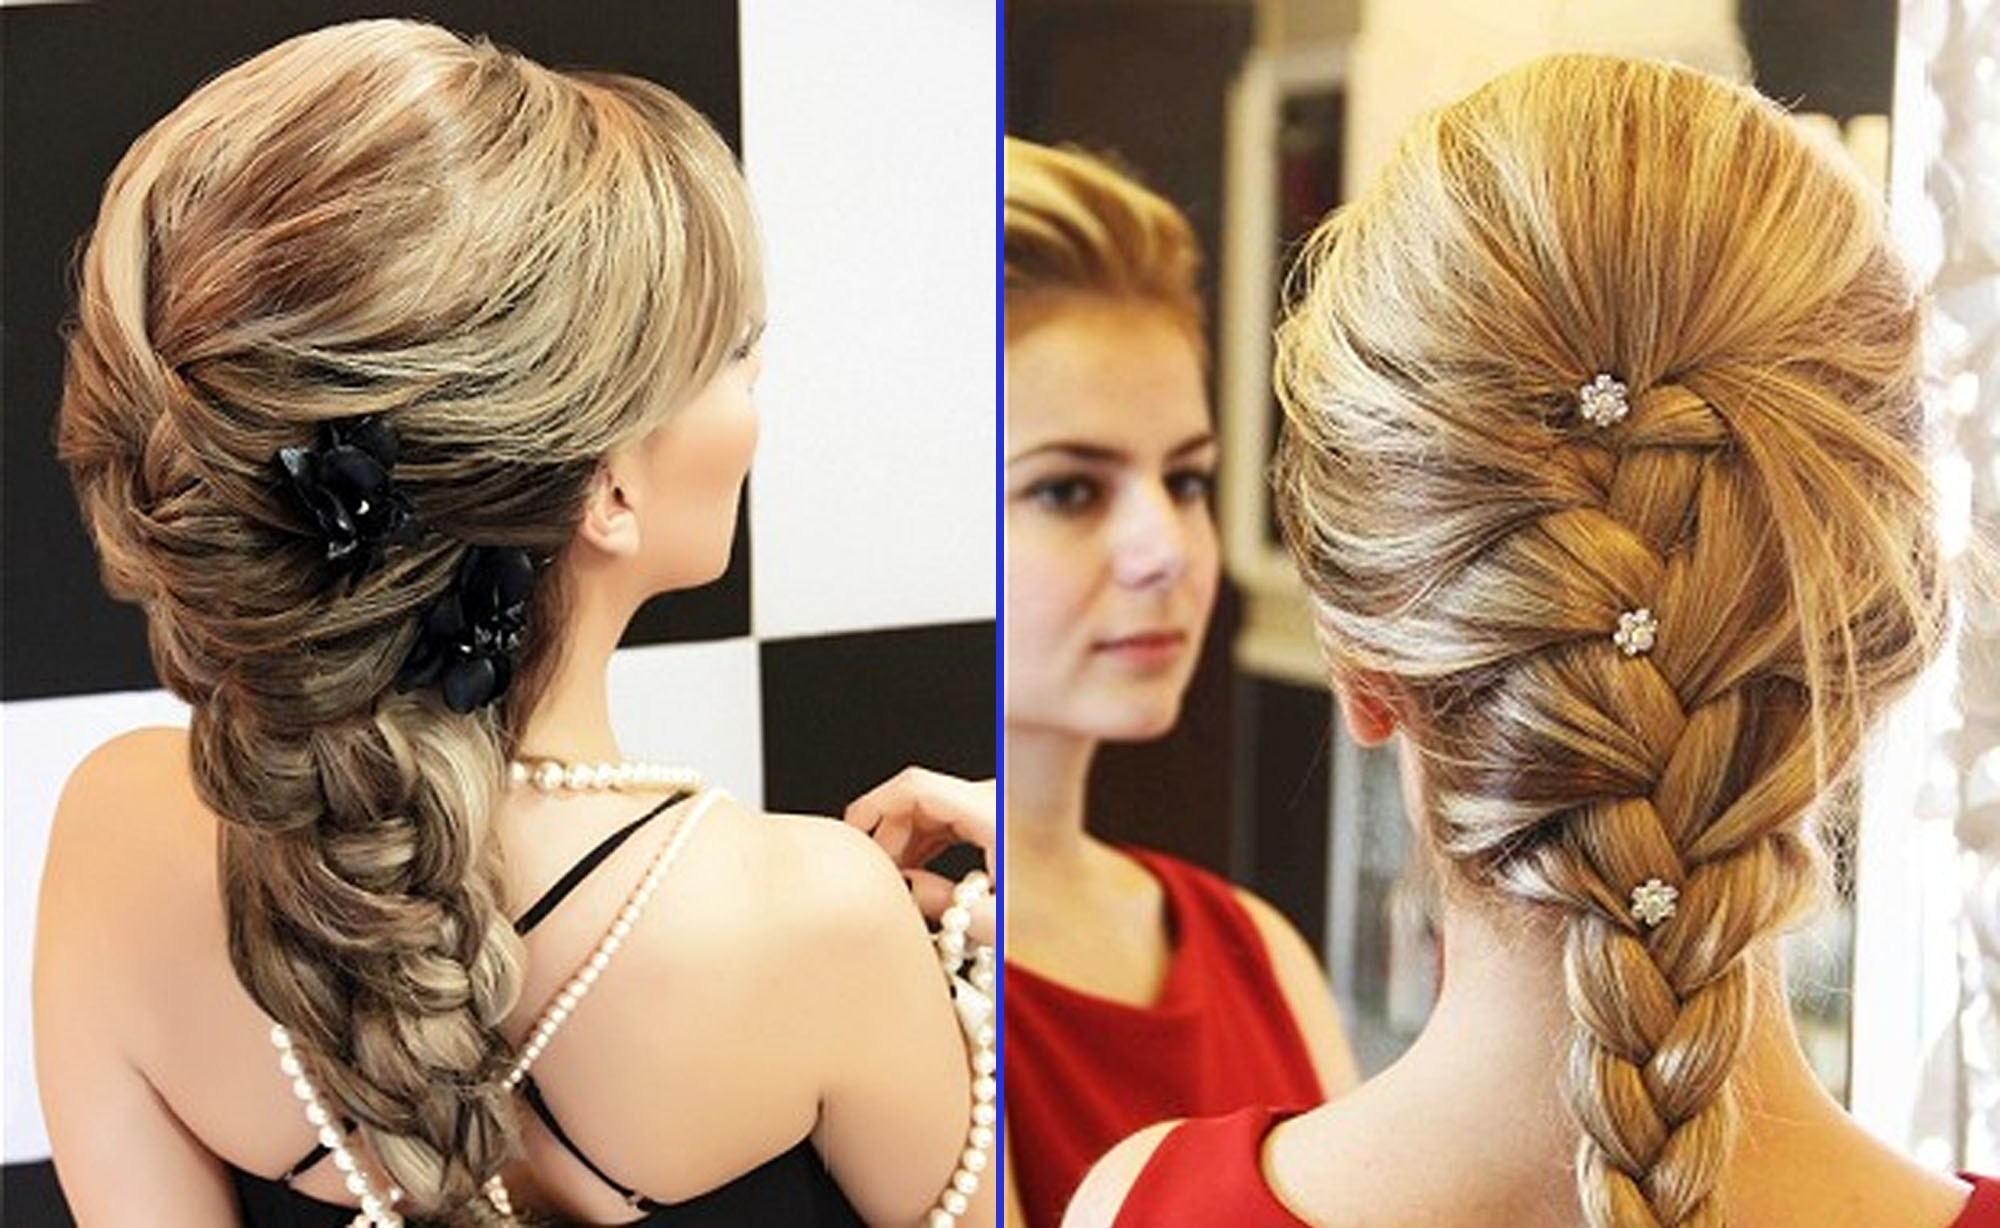 Well Liked Braided Hairstyles For Women Regarding 11 Best Braided Hair Images 2017 – Hairstyles (View 15 of 15)